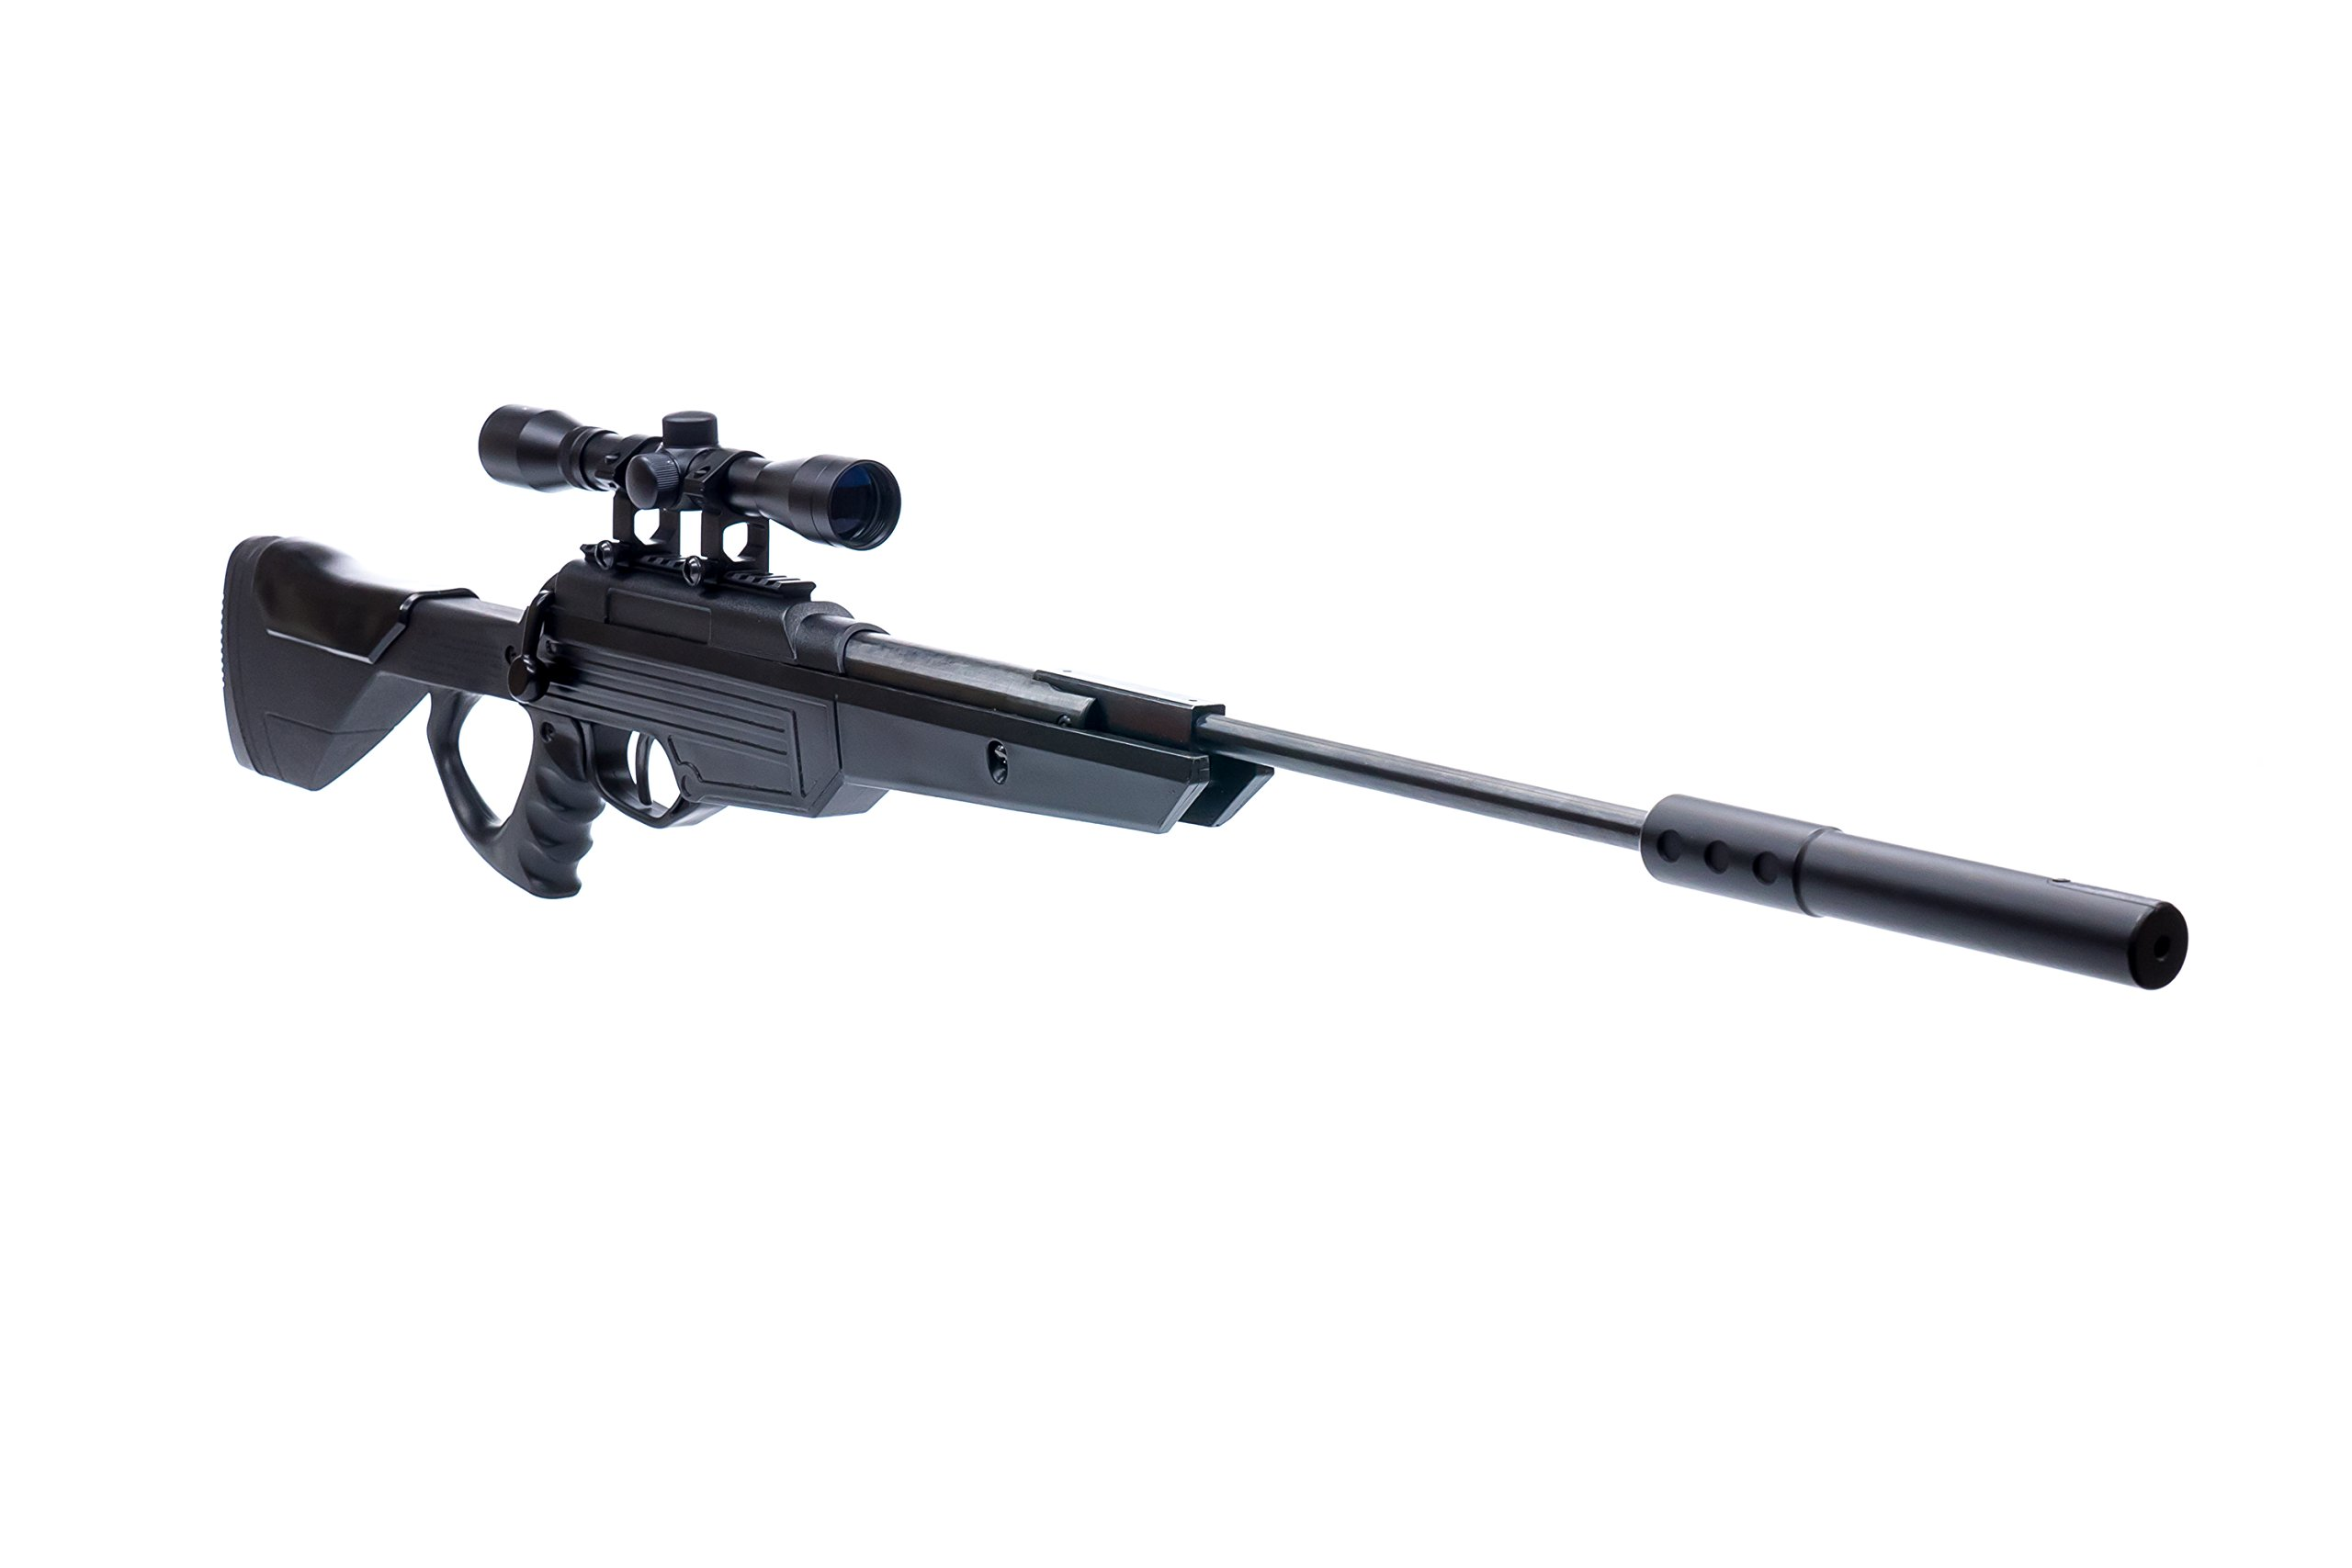 Bear River TPR 1300 Suppressed Hunting Air Rifle - .177 Airgun - Pellet Gun with Scope and Silencer Included